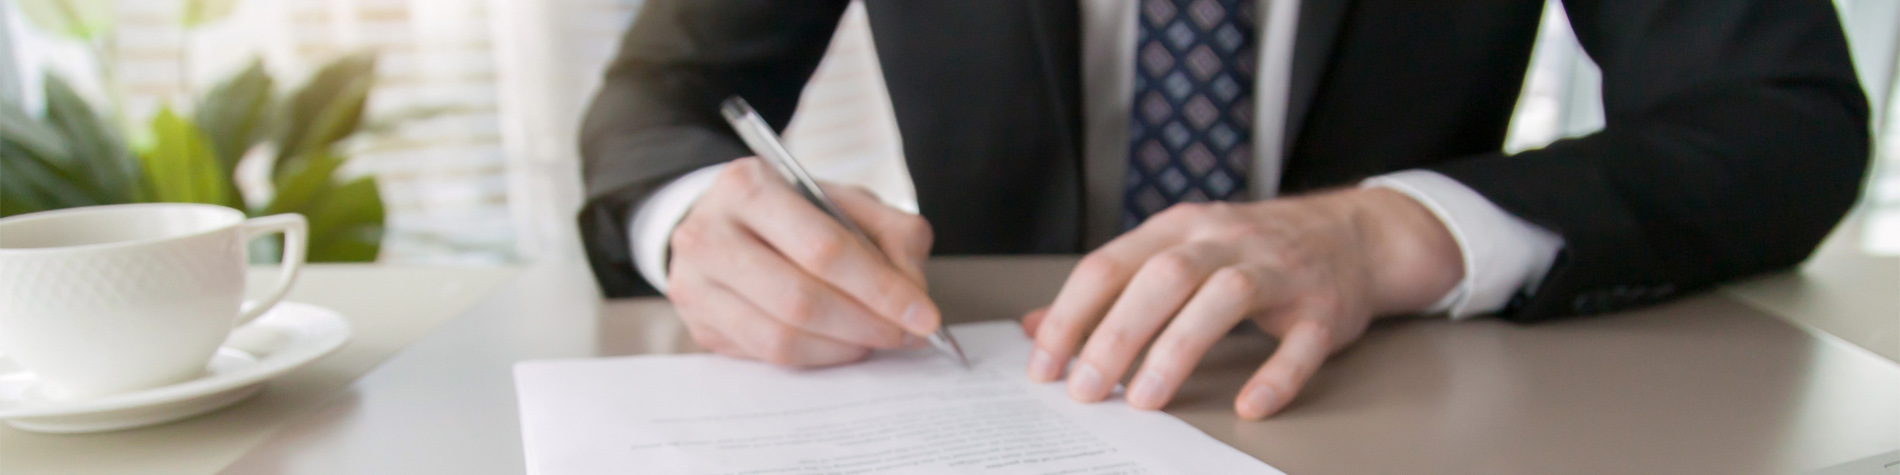 Insurance agent signing contracts